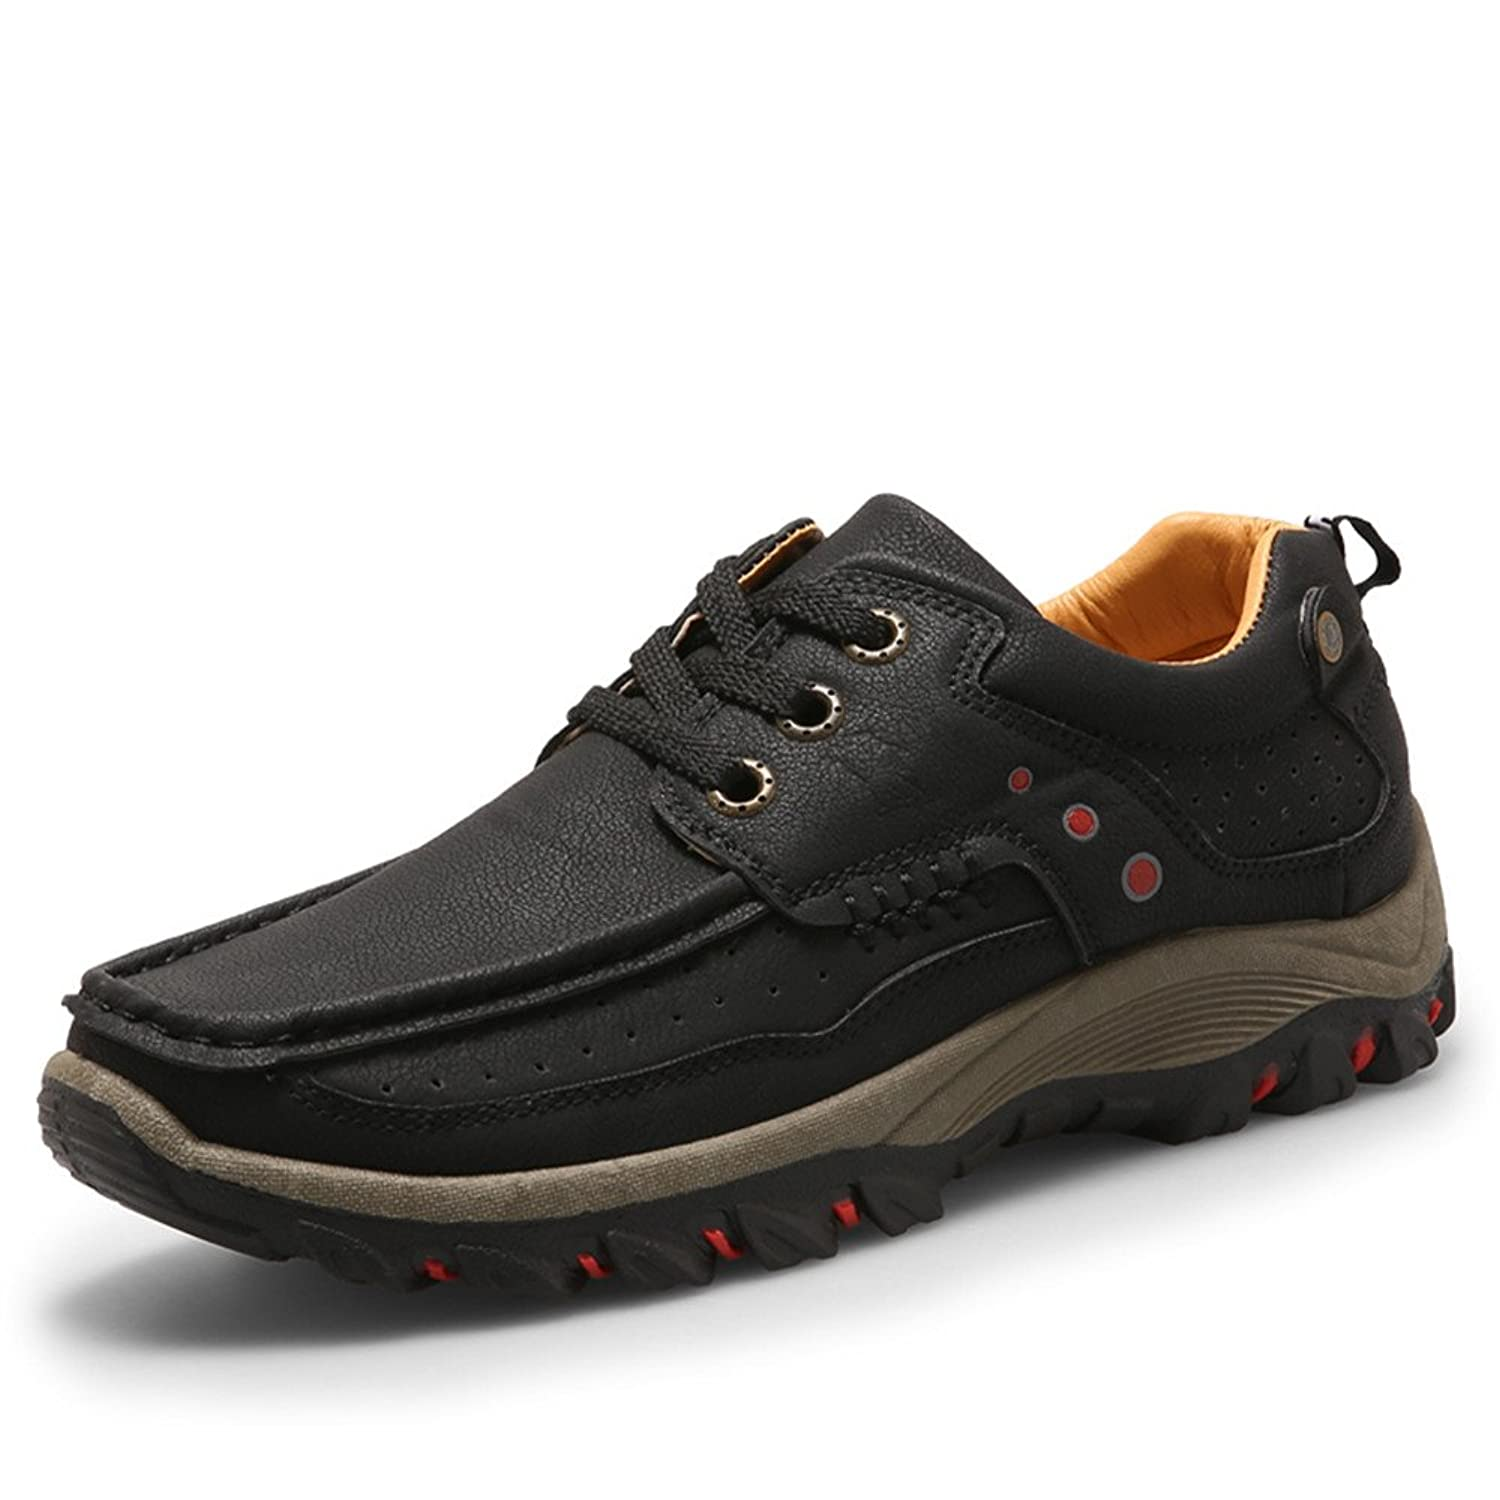 2016 autumn and winter leisure outdoor Shoes Mens Size anti-skid hiking shoes